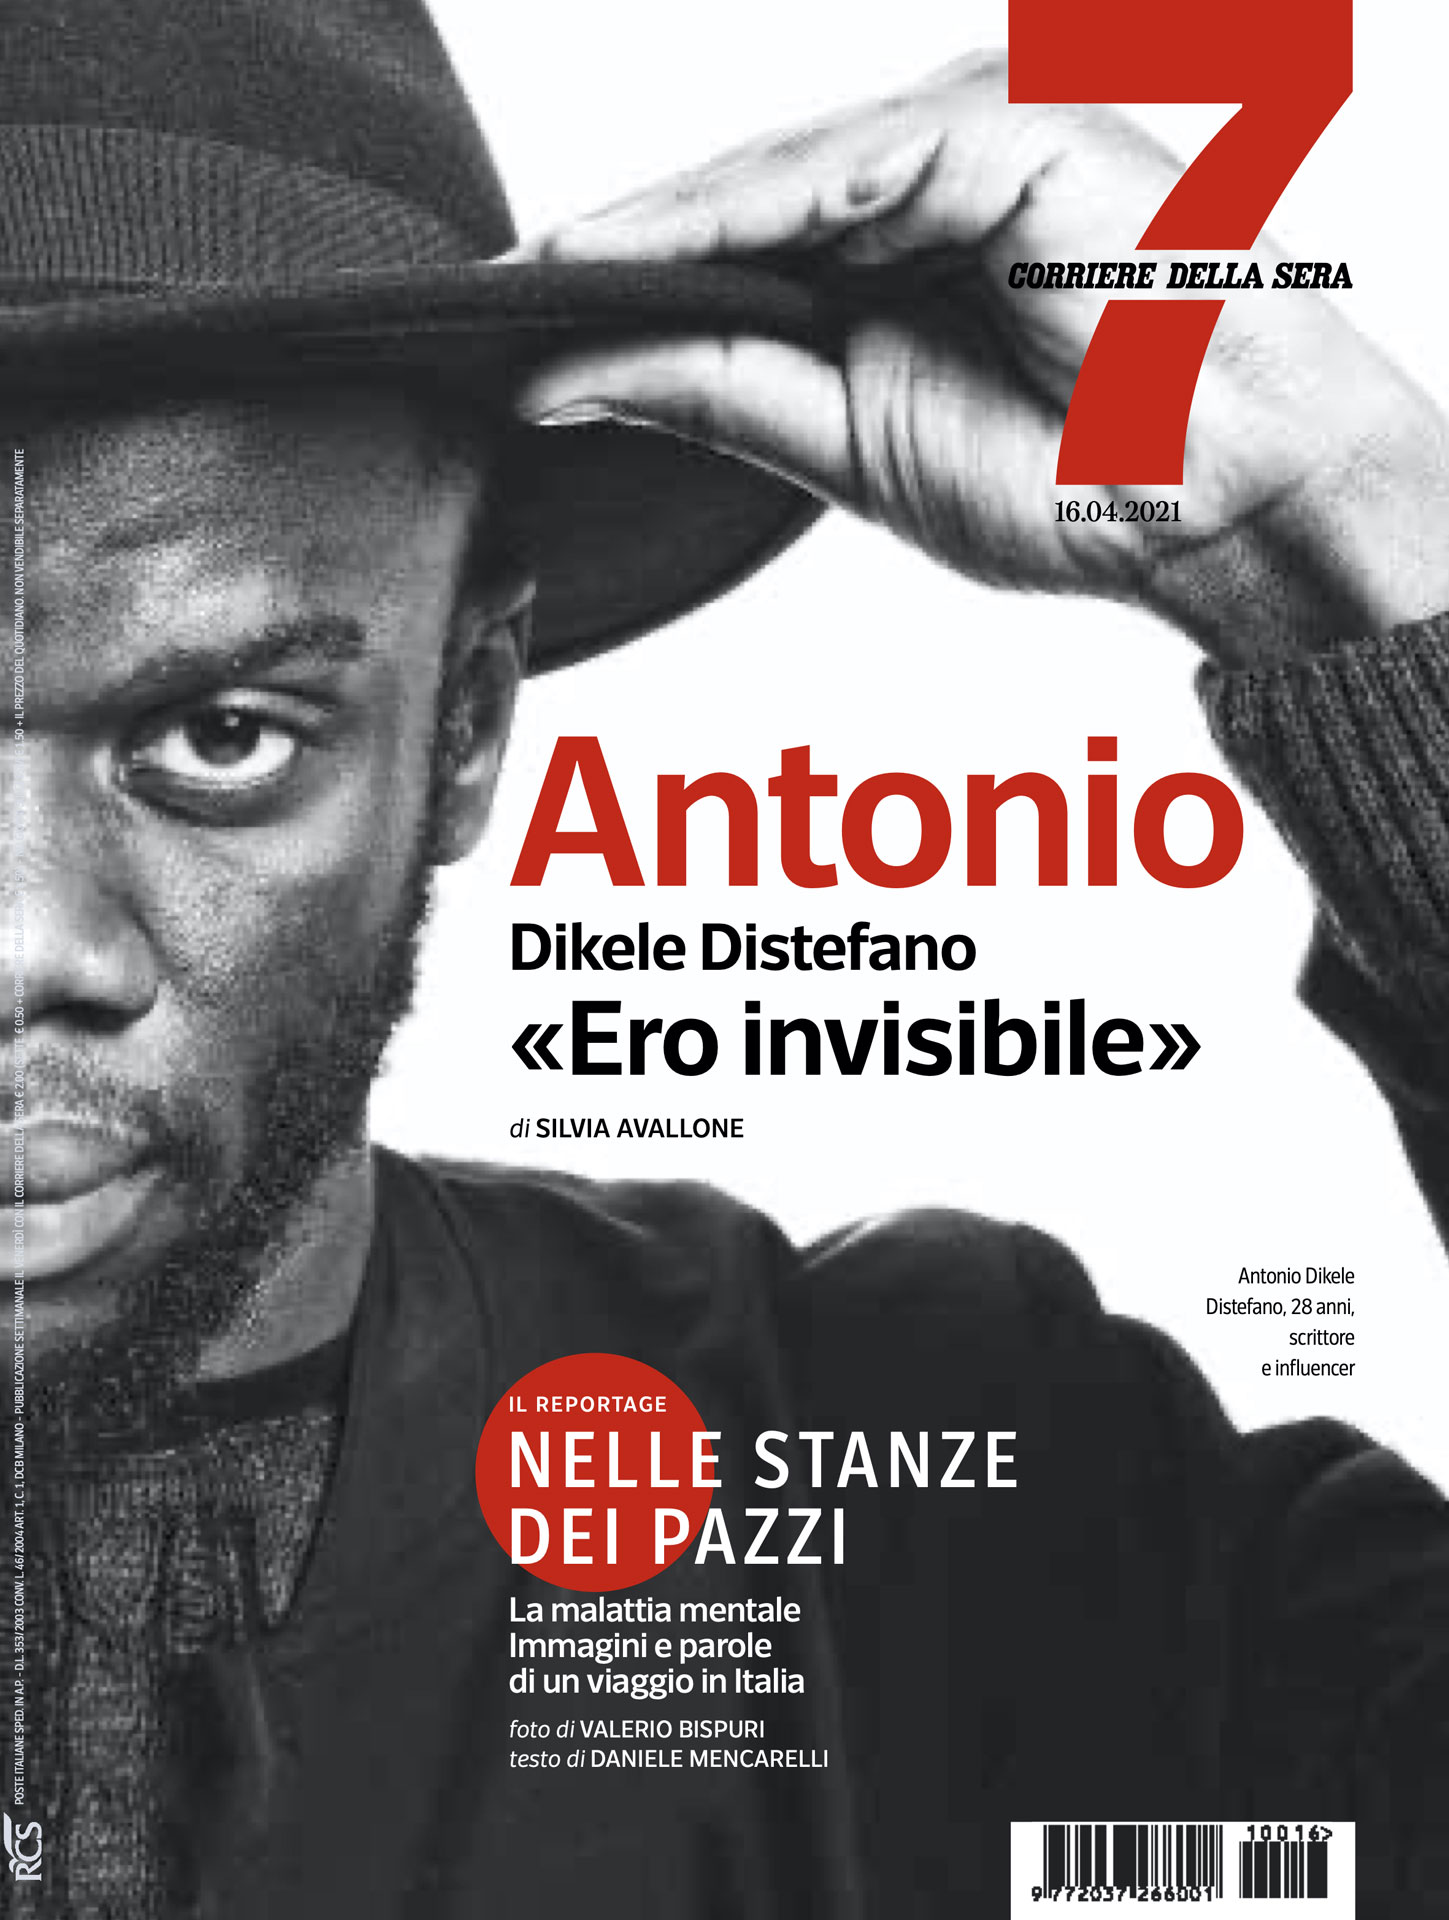 Antonio Dikele Distefano cover di 7